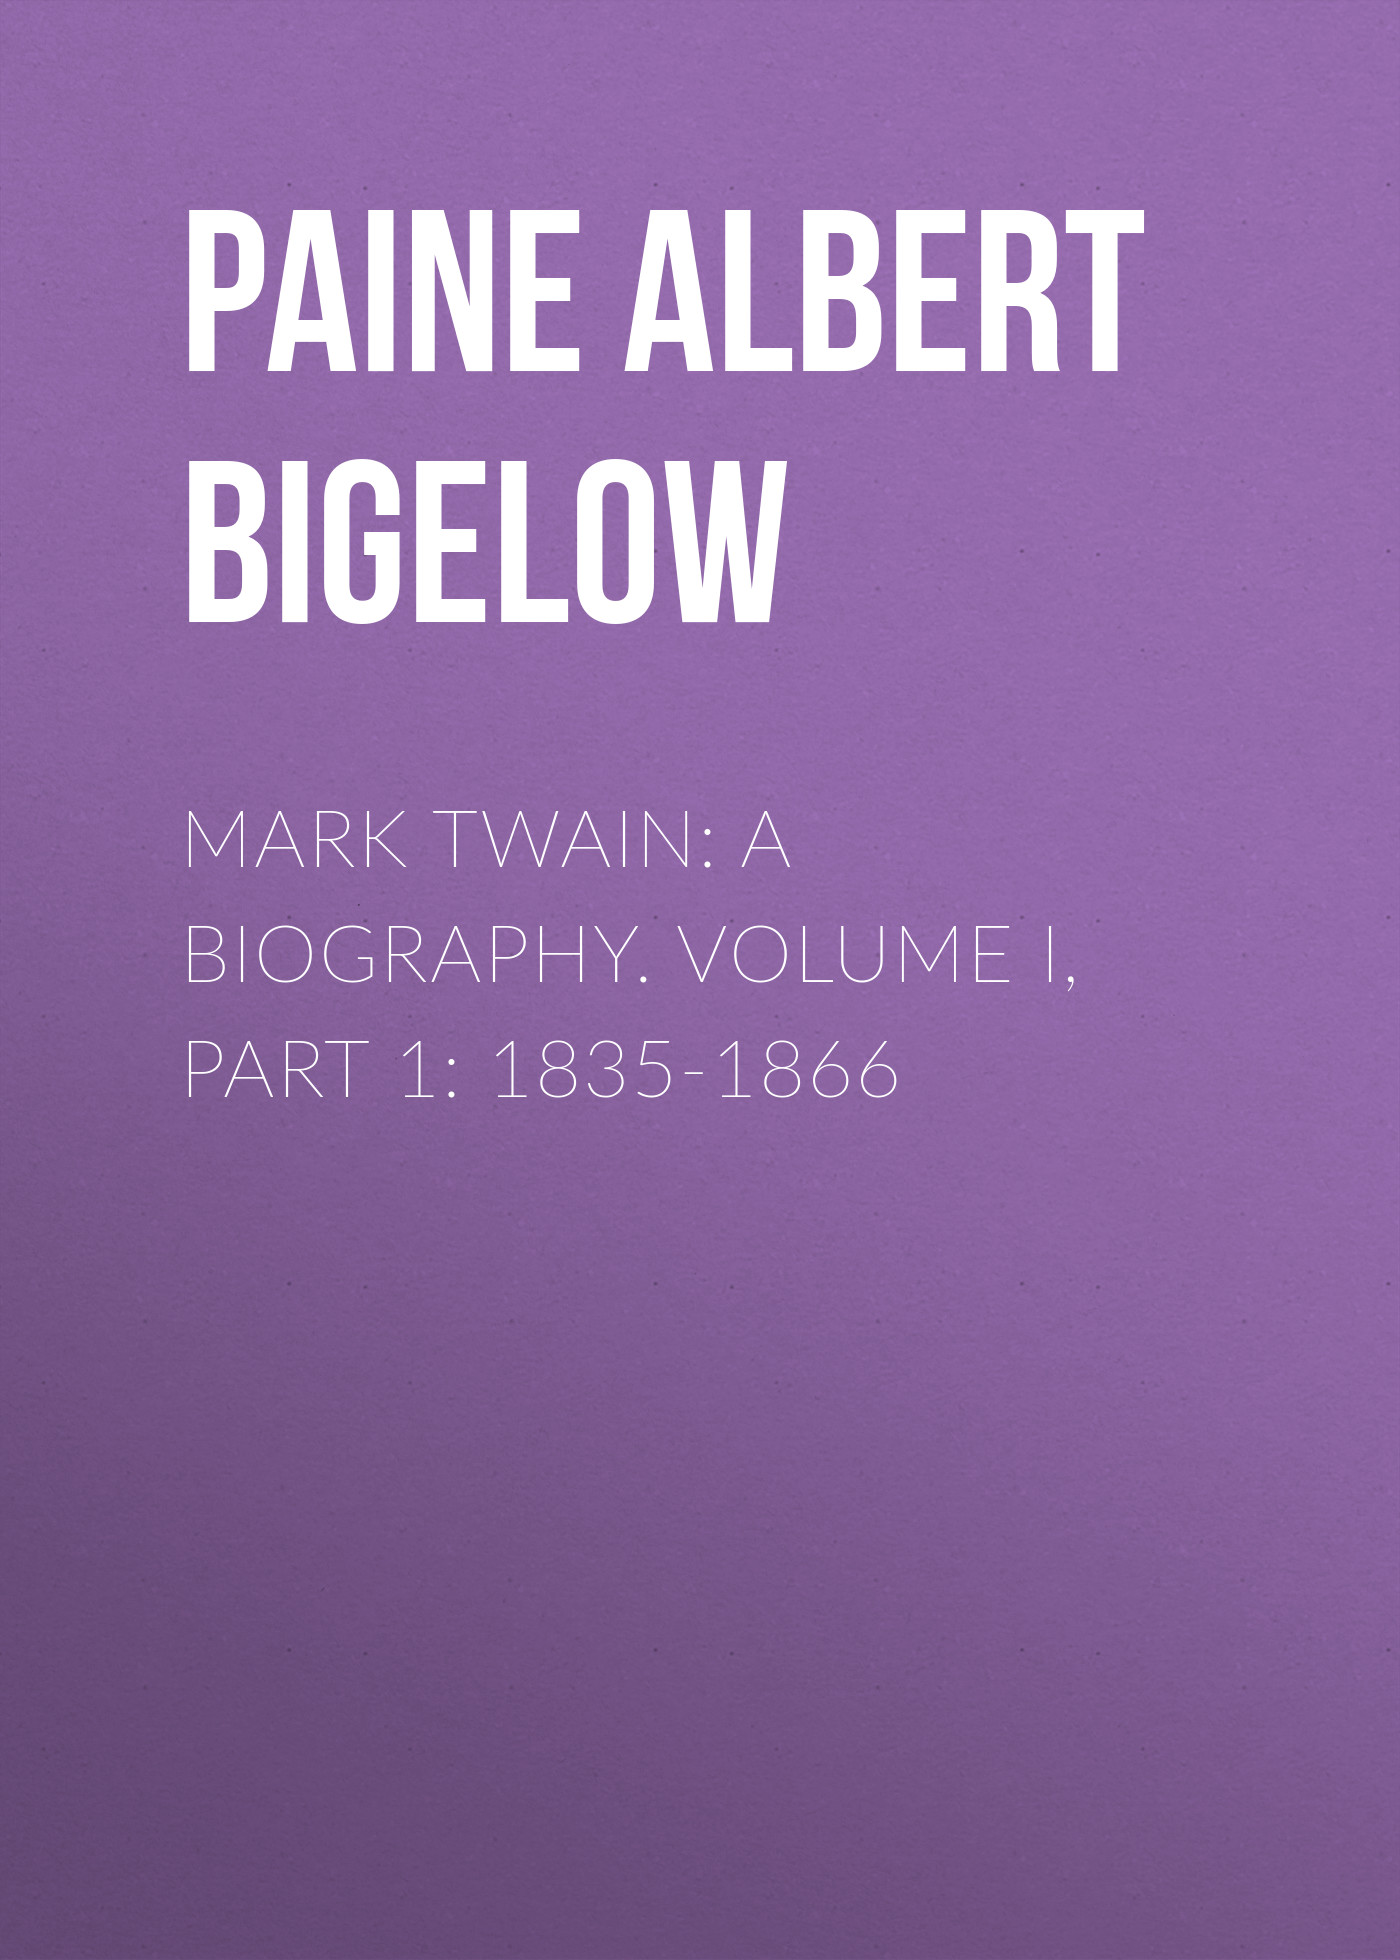 Paine Albert Bigelow Mark Twain: A Biography. Volume I, Part 1: 1835-1866